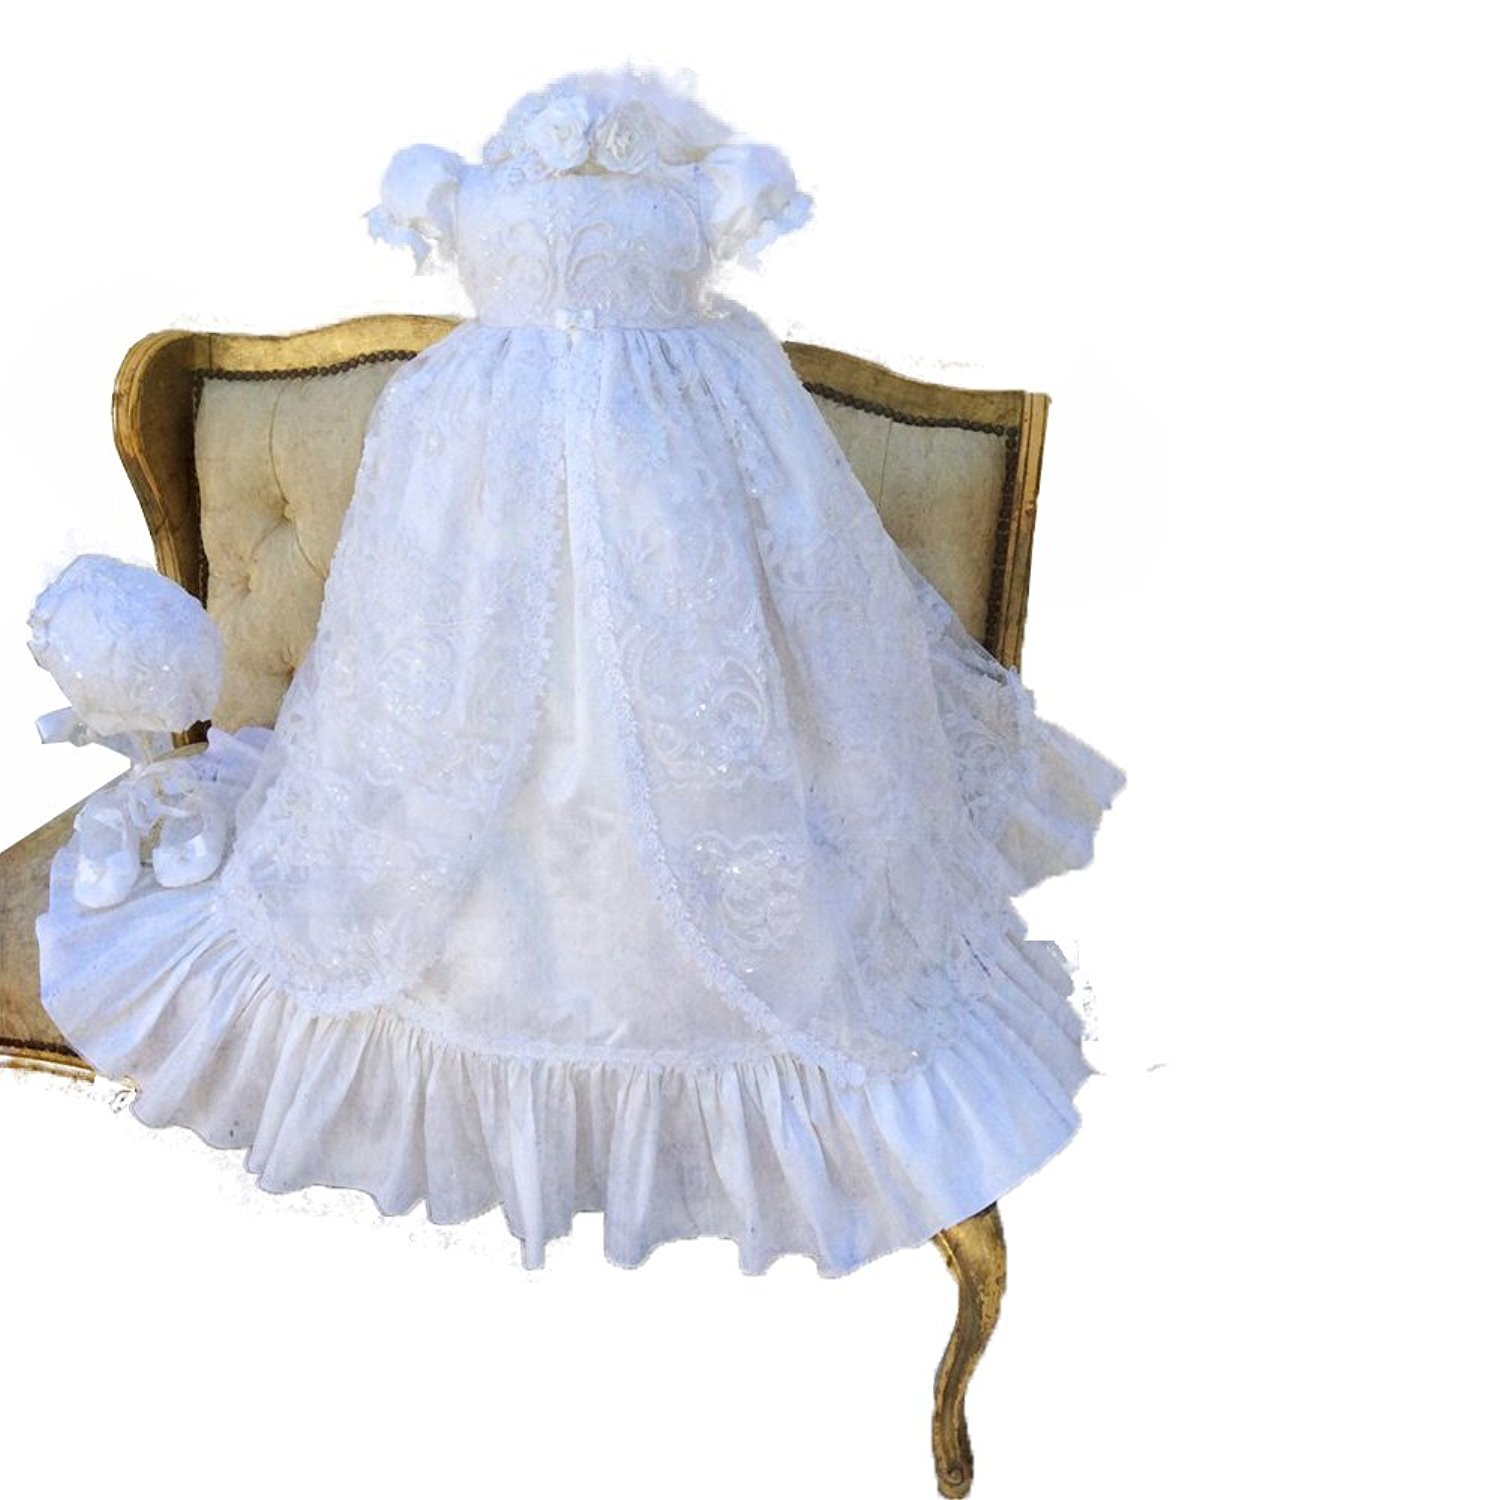 Banfvting Lace Long Infant Christening Gowns Baby Girls Dress